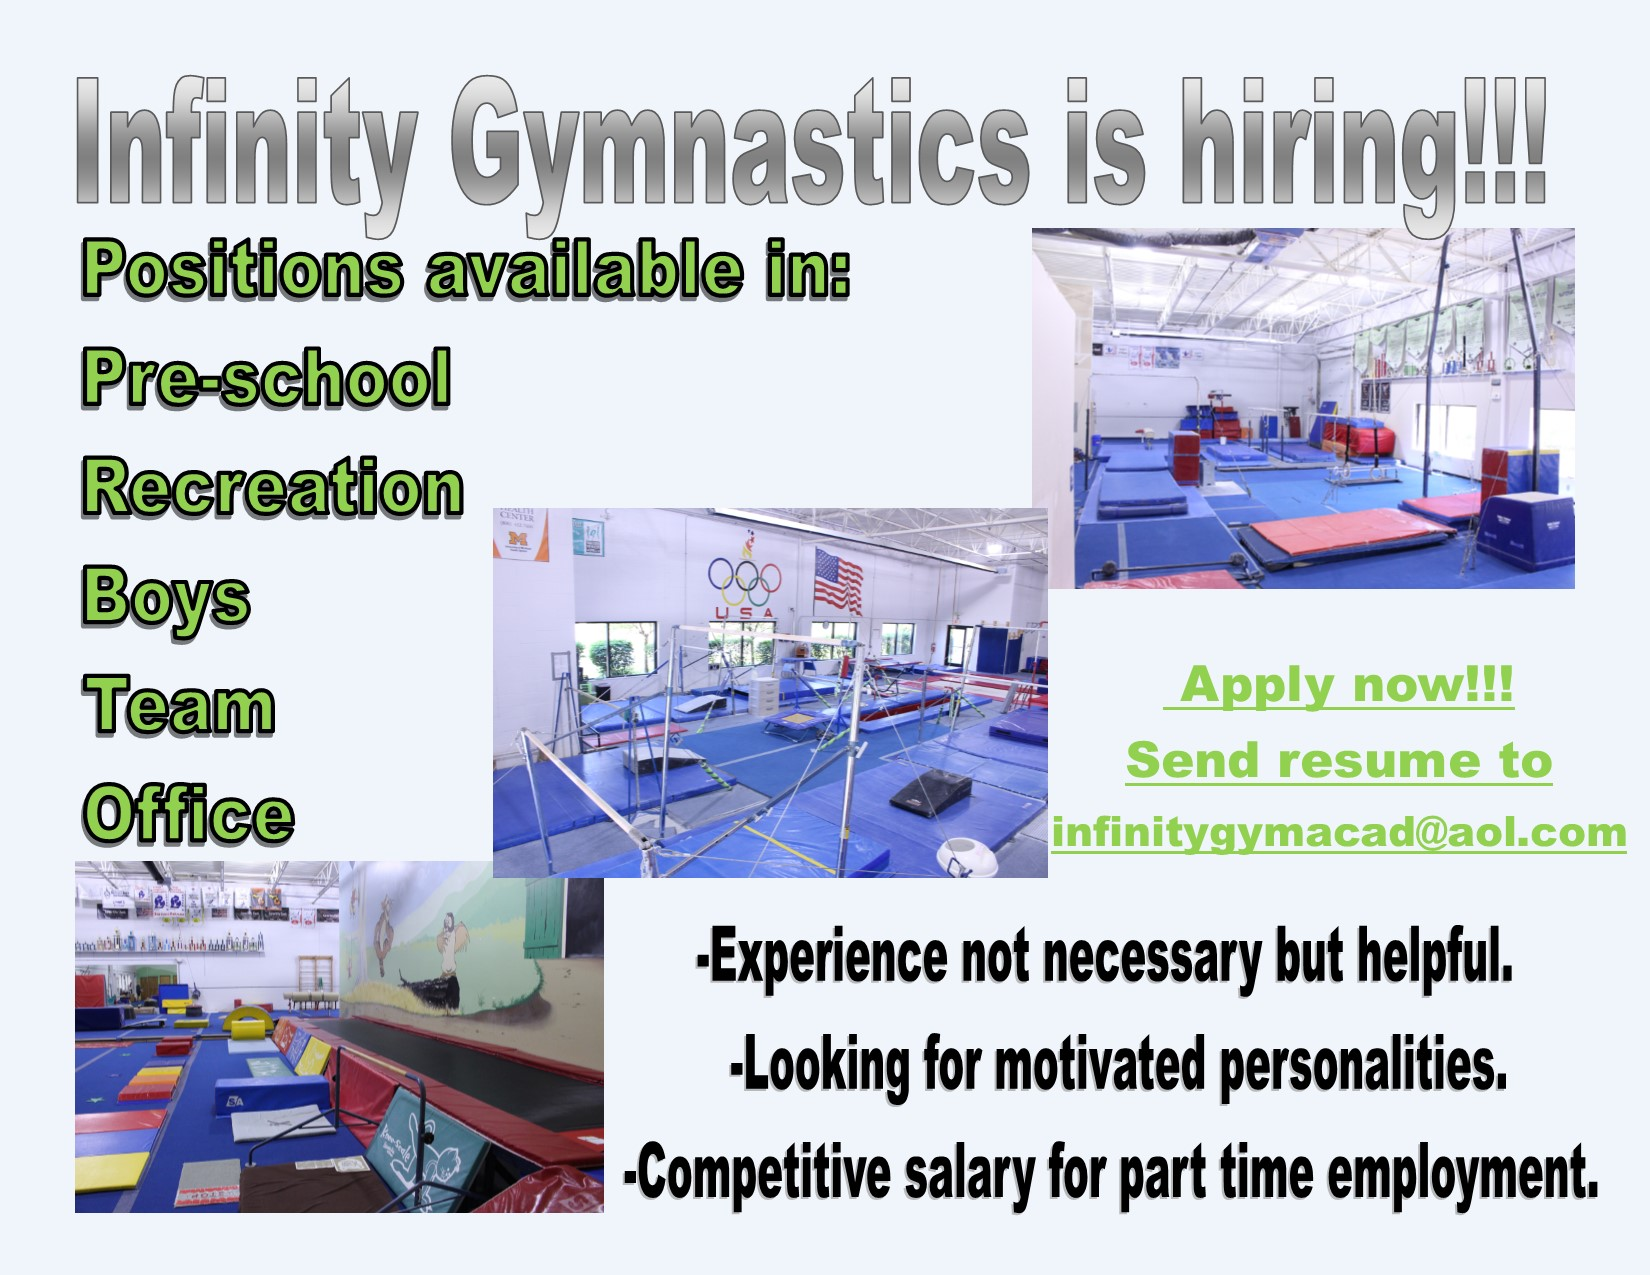 Employment Website flyer#2.jpg